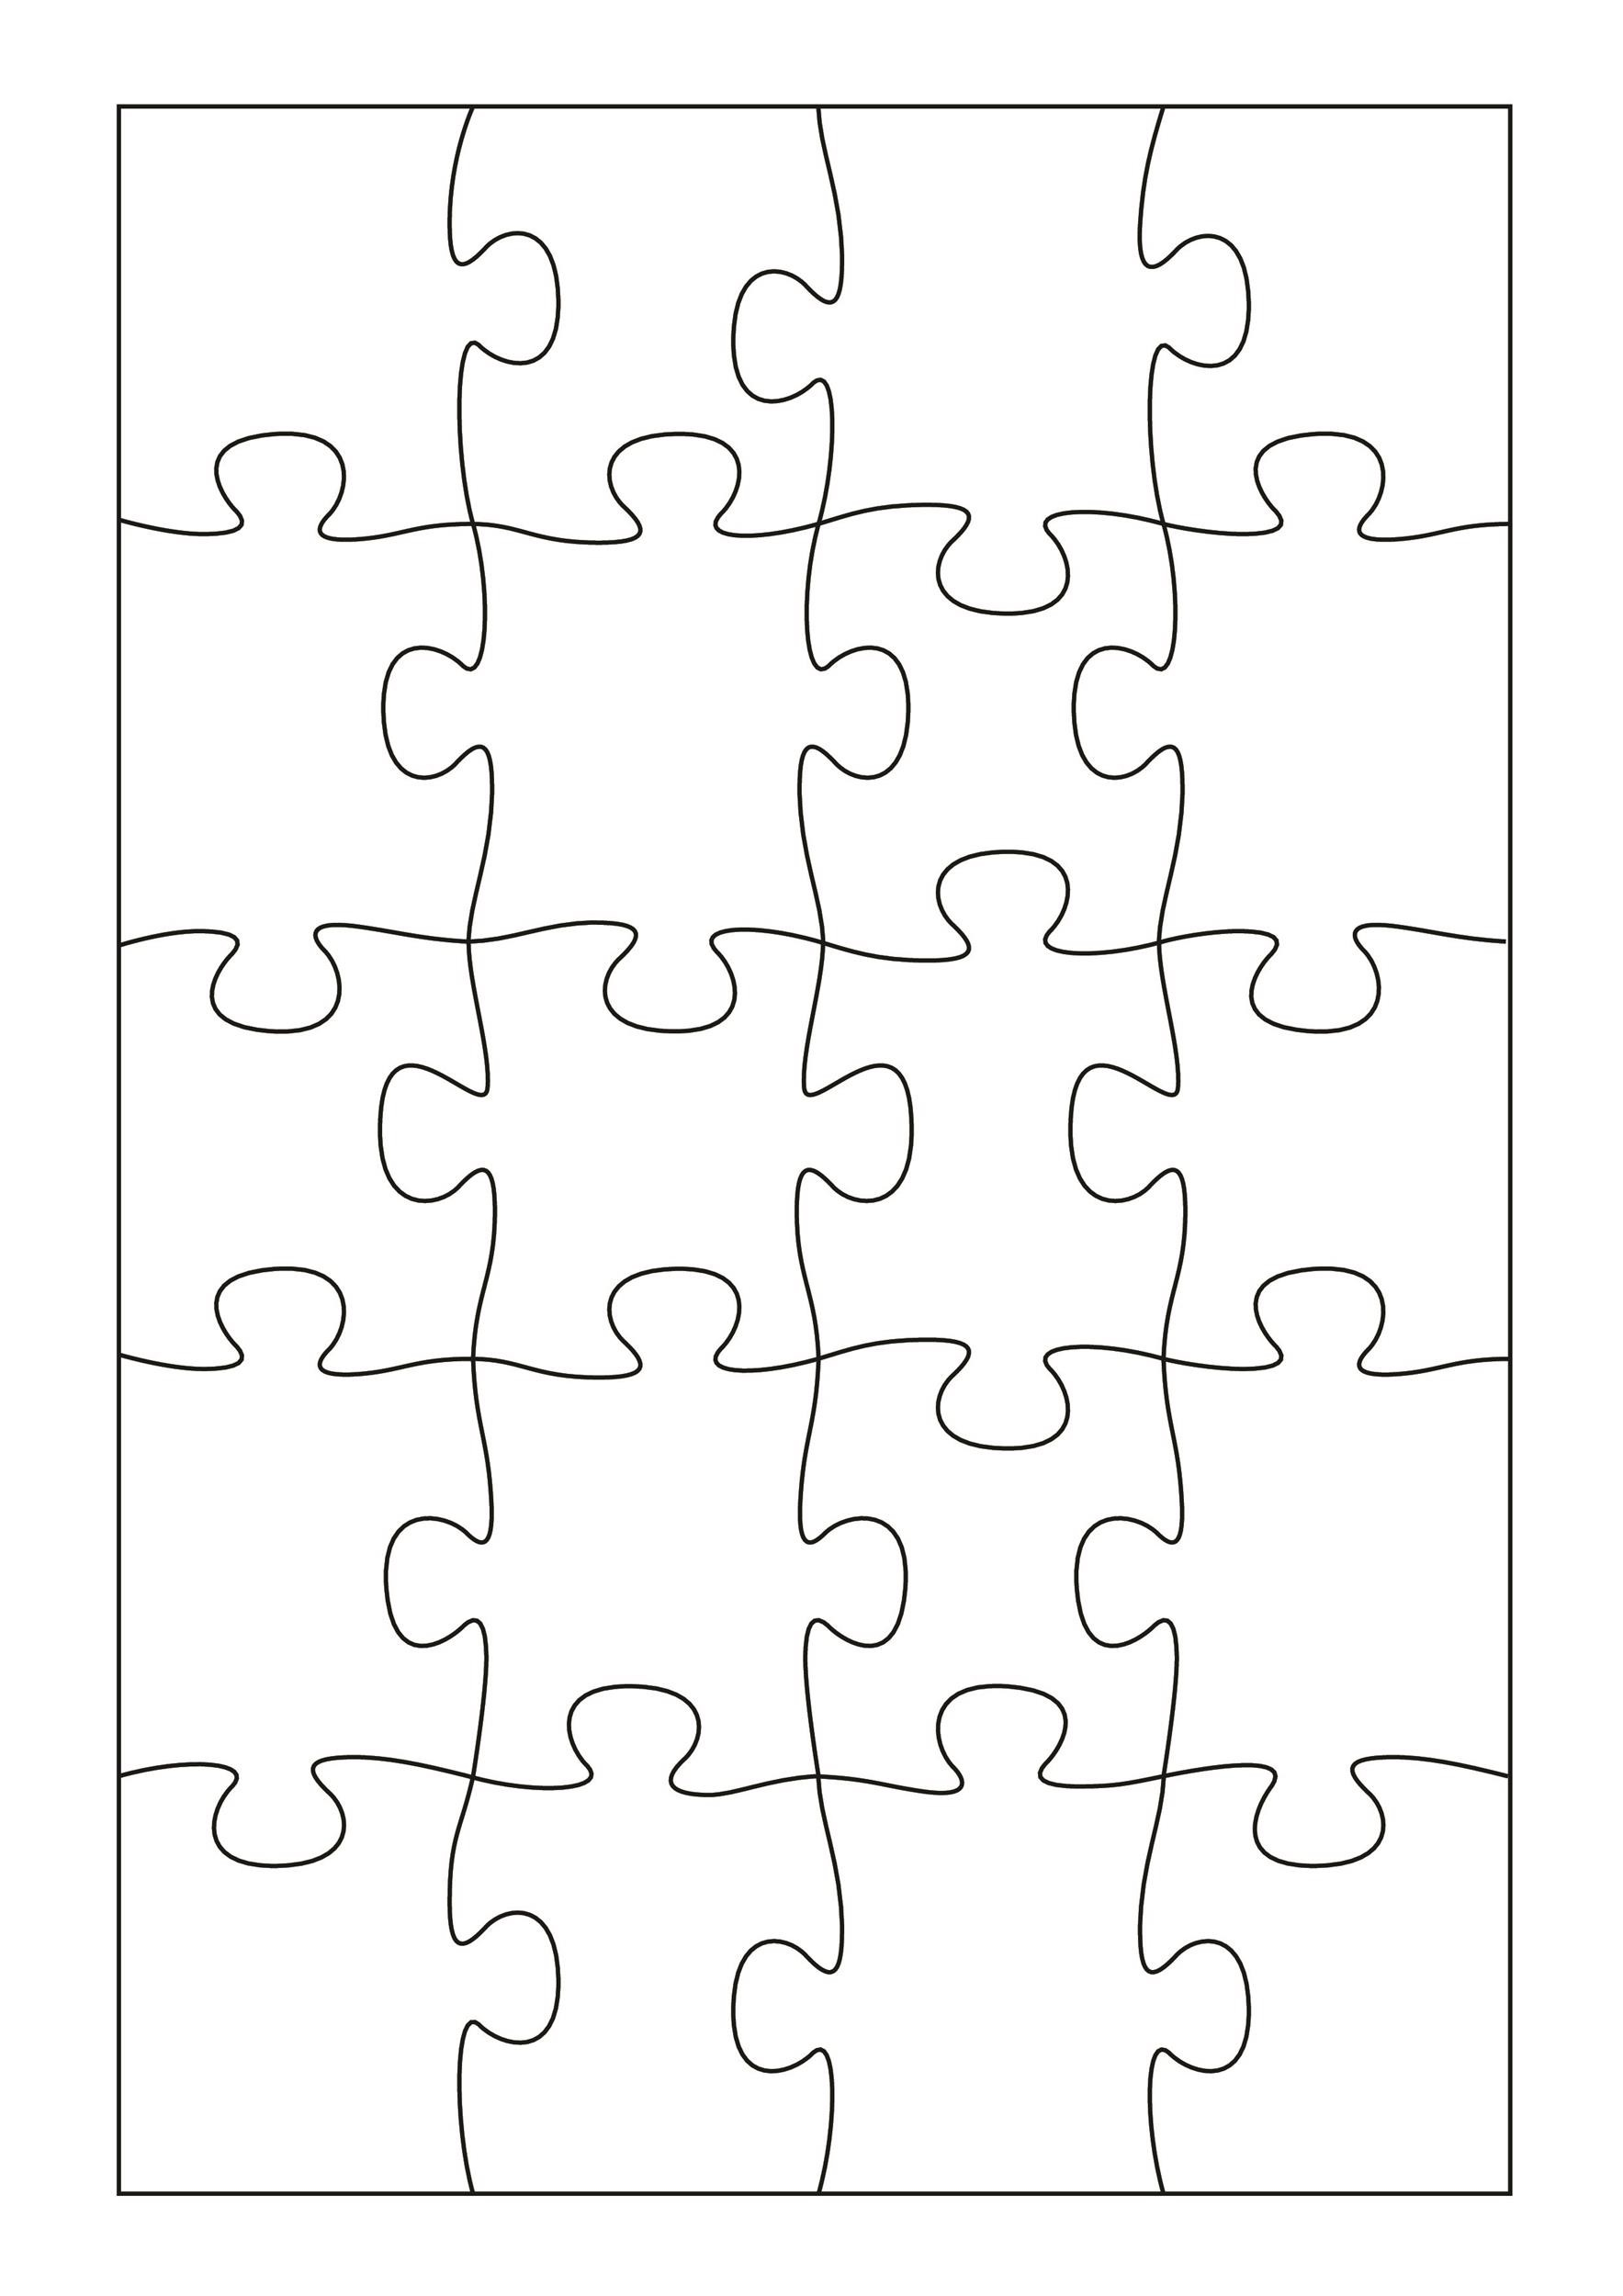 Superb image with printable blank puzzle